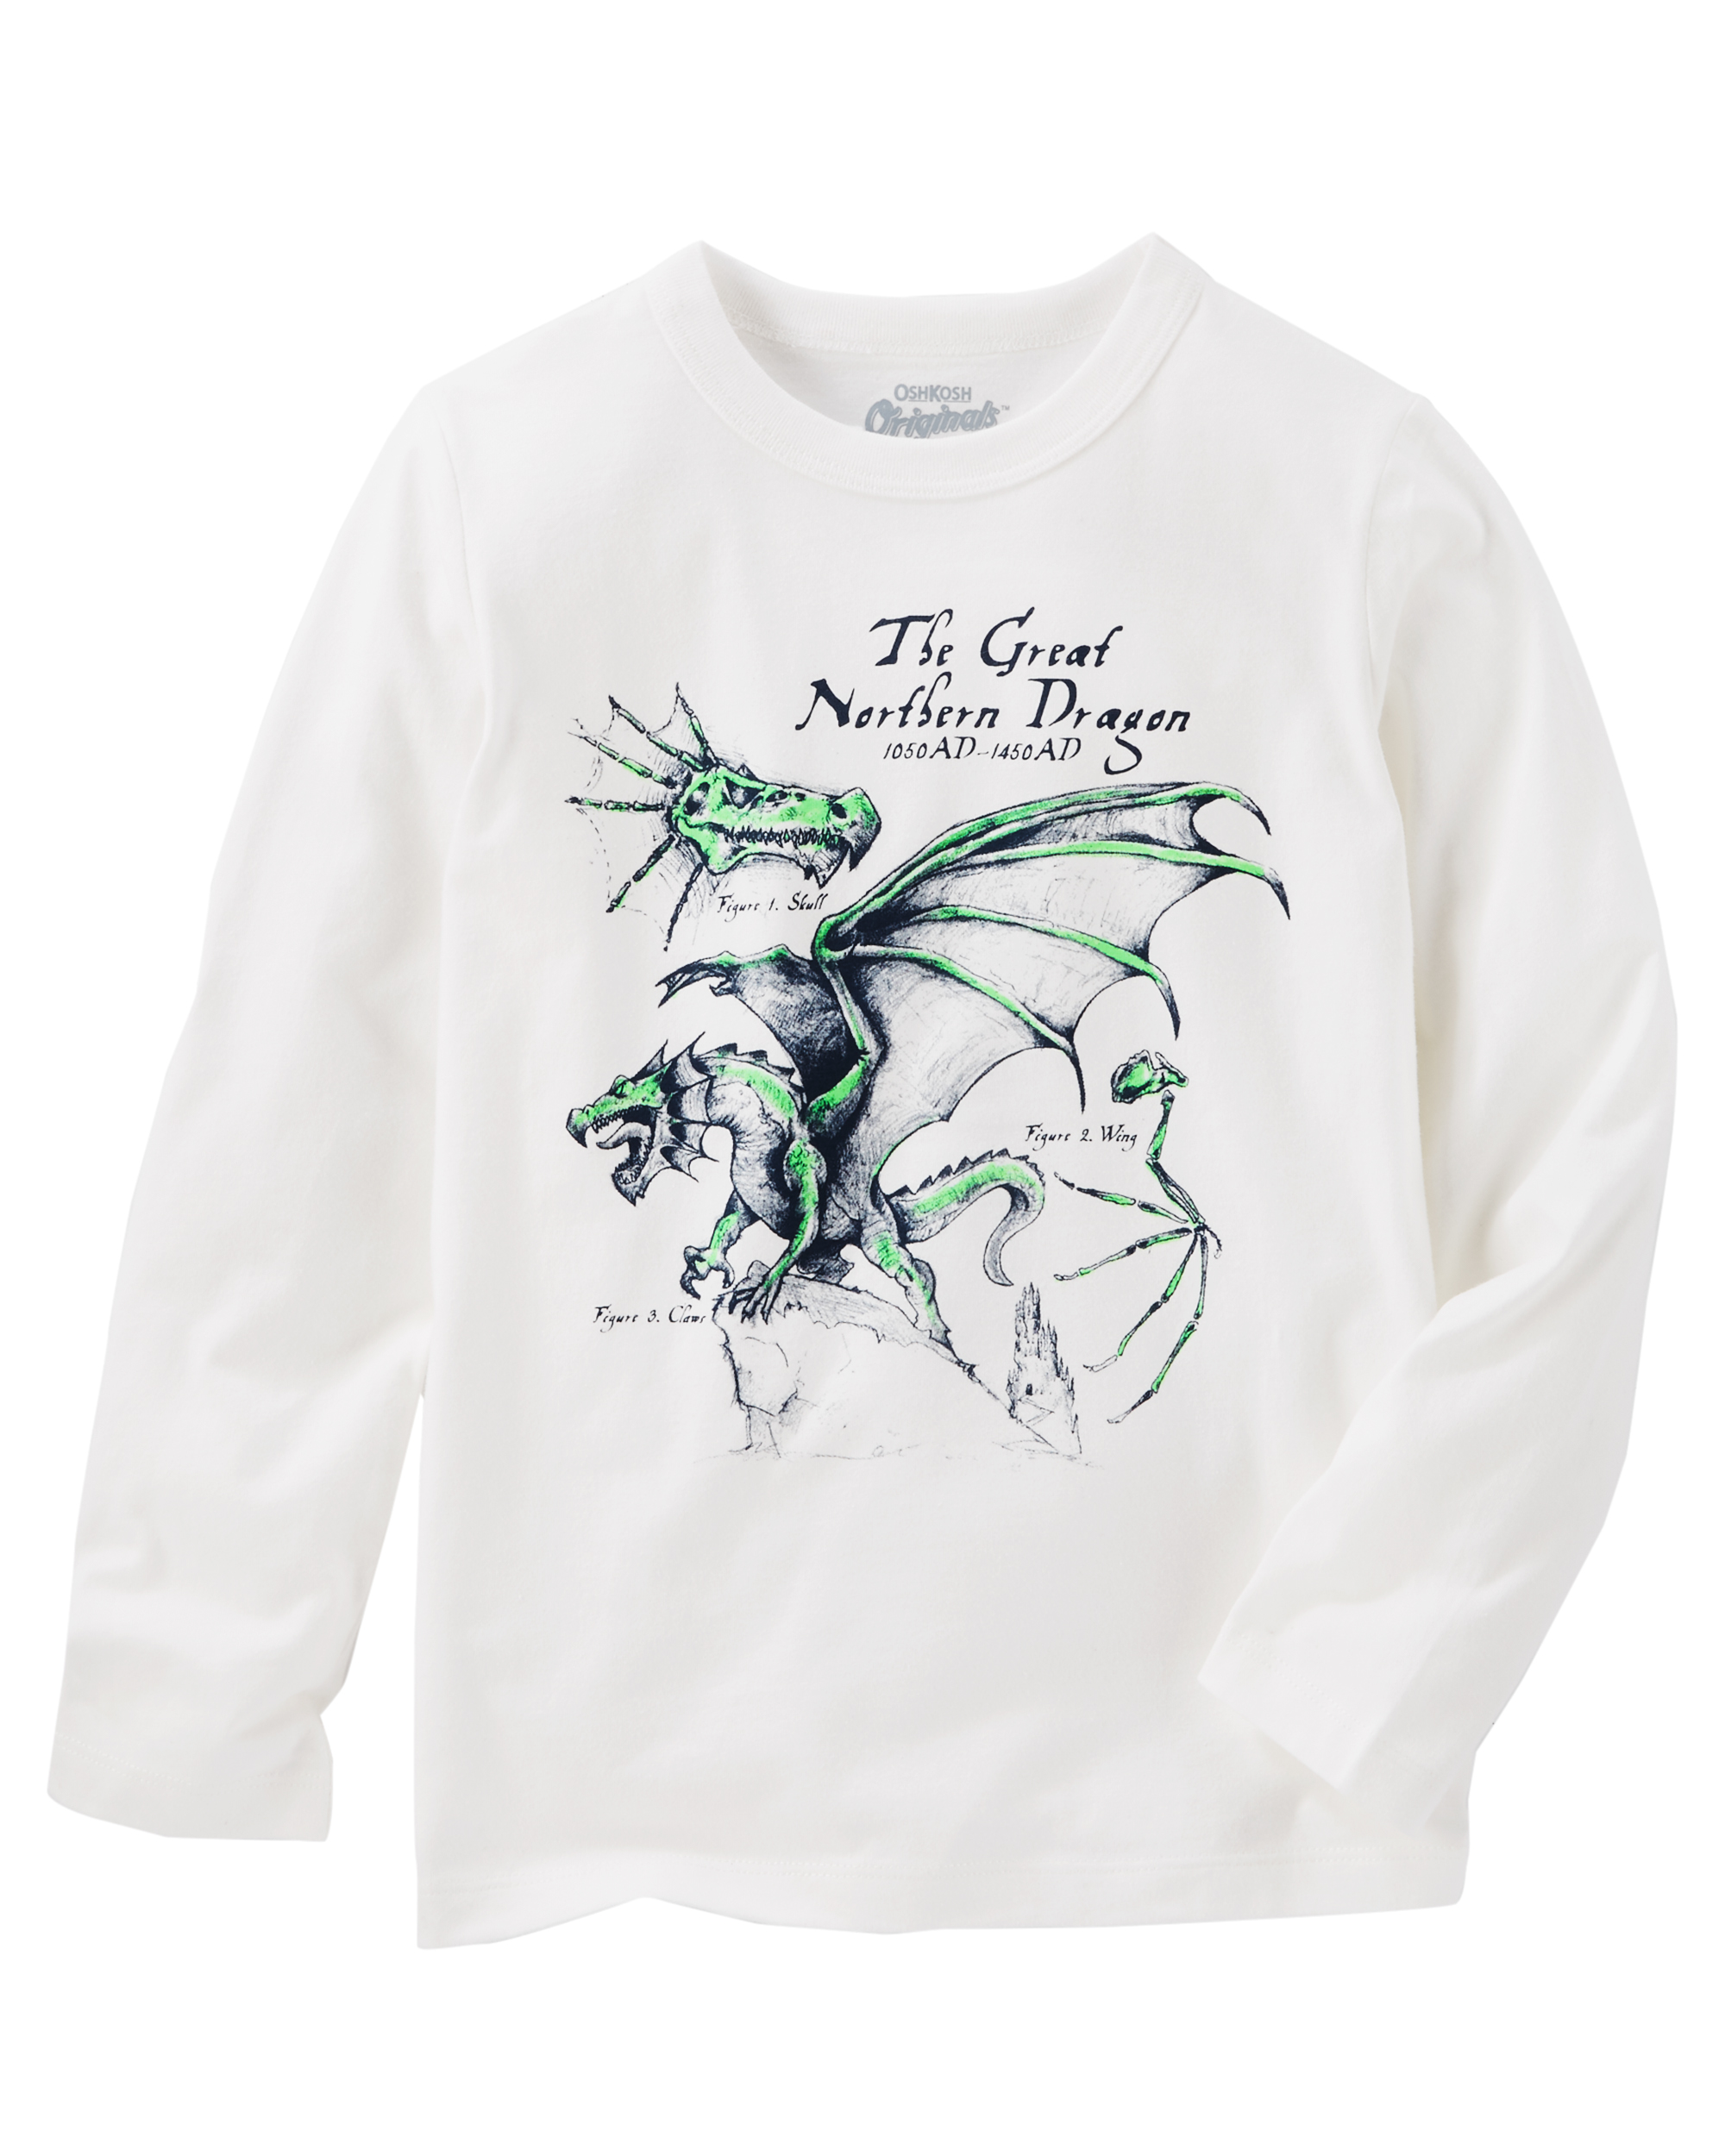 Boys Long Sleeve Top Tee Shirt t Toddler  Graphic Dragon Size 2T New Clearance